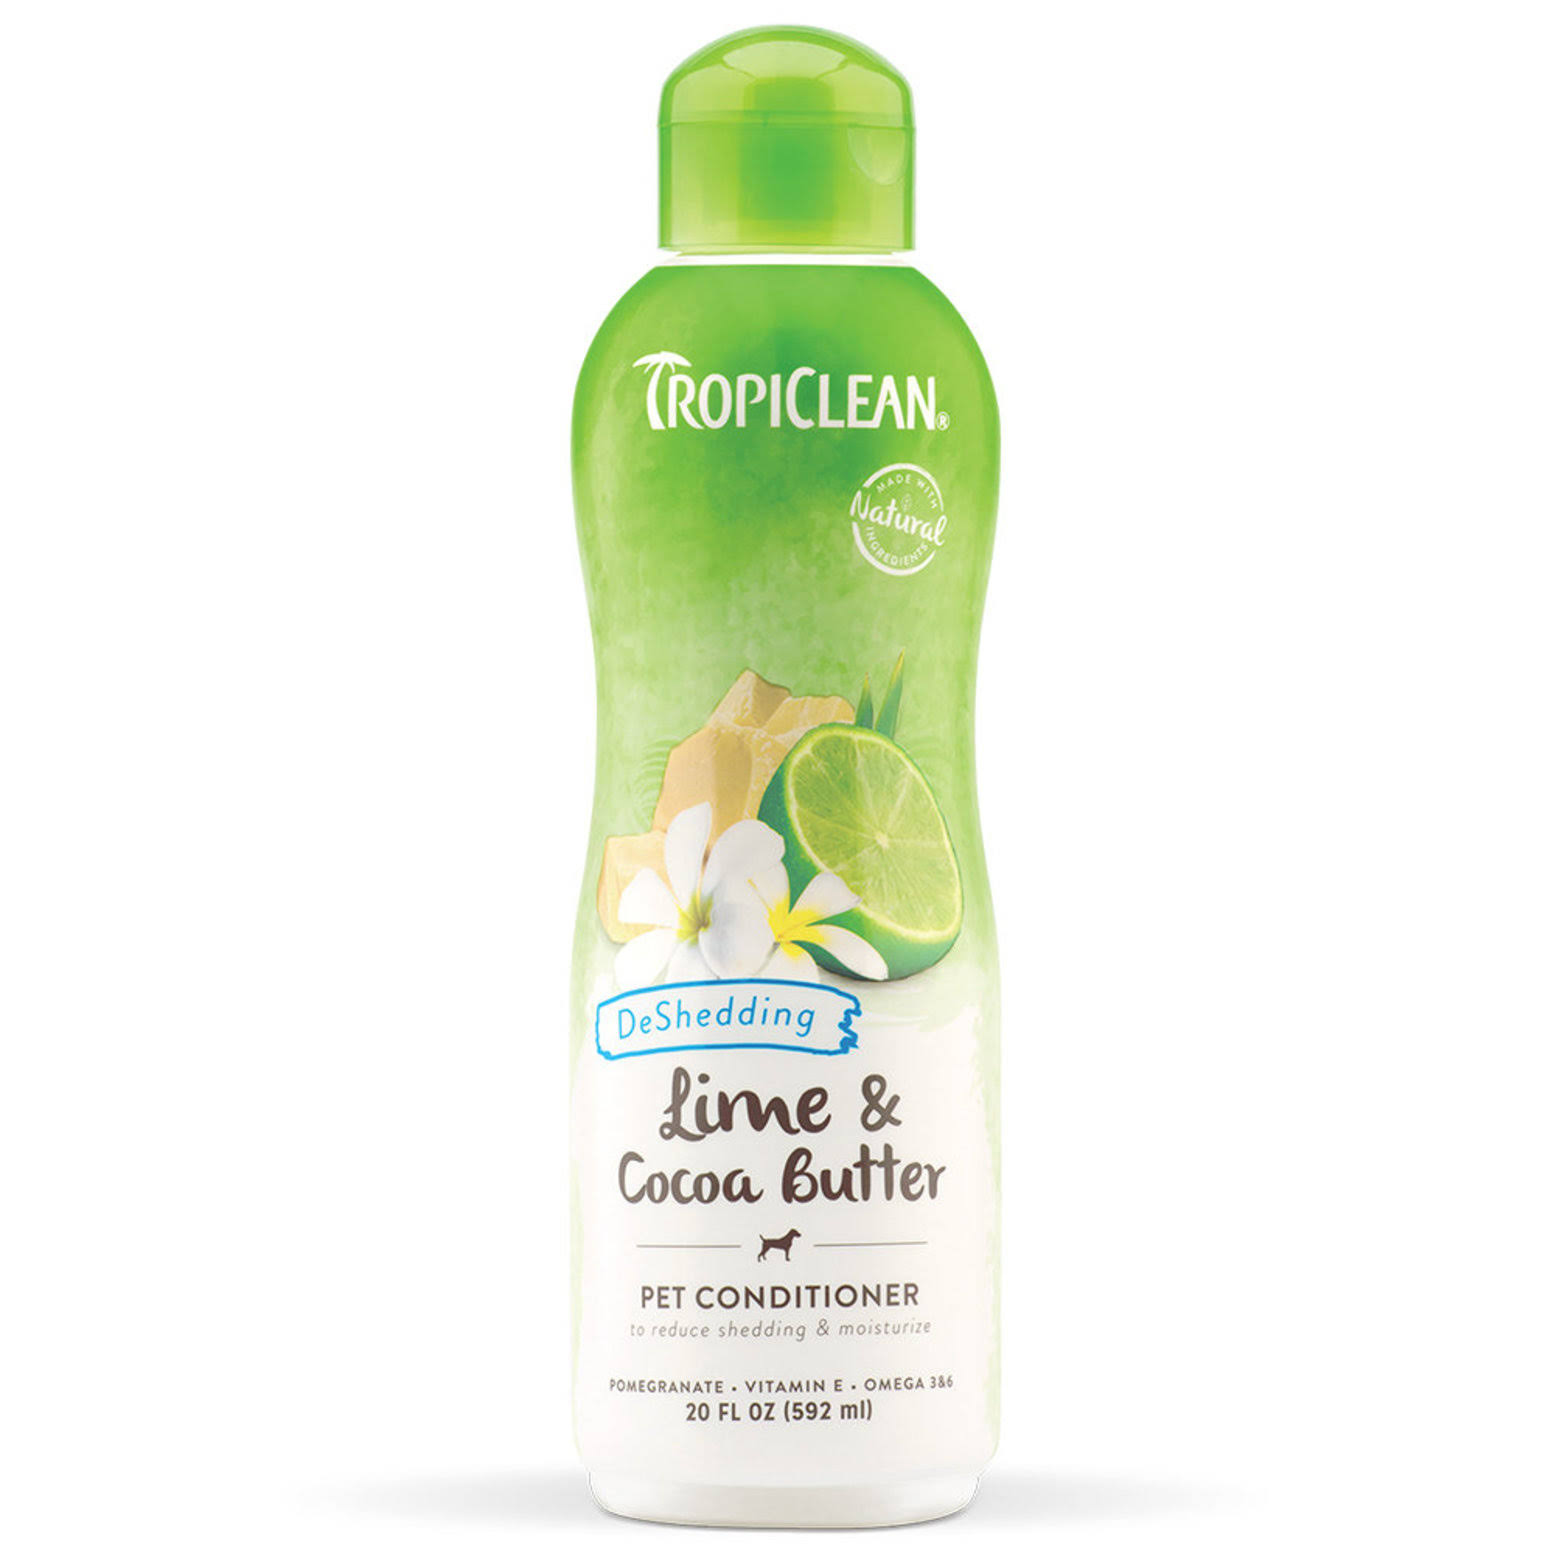 TropiClean Lime and Cocoa Butter deShedding Conditioner for Pets